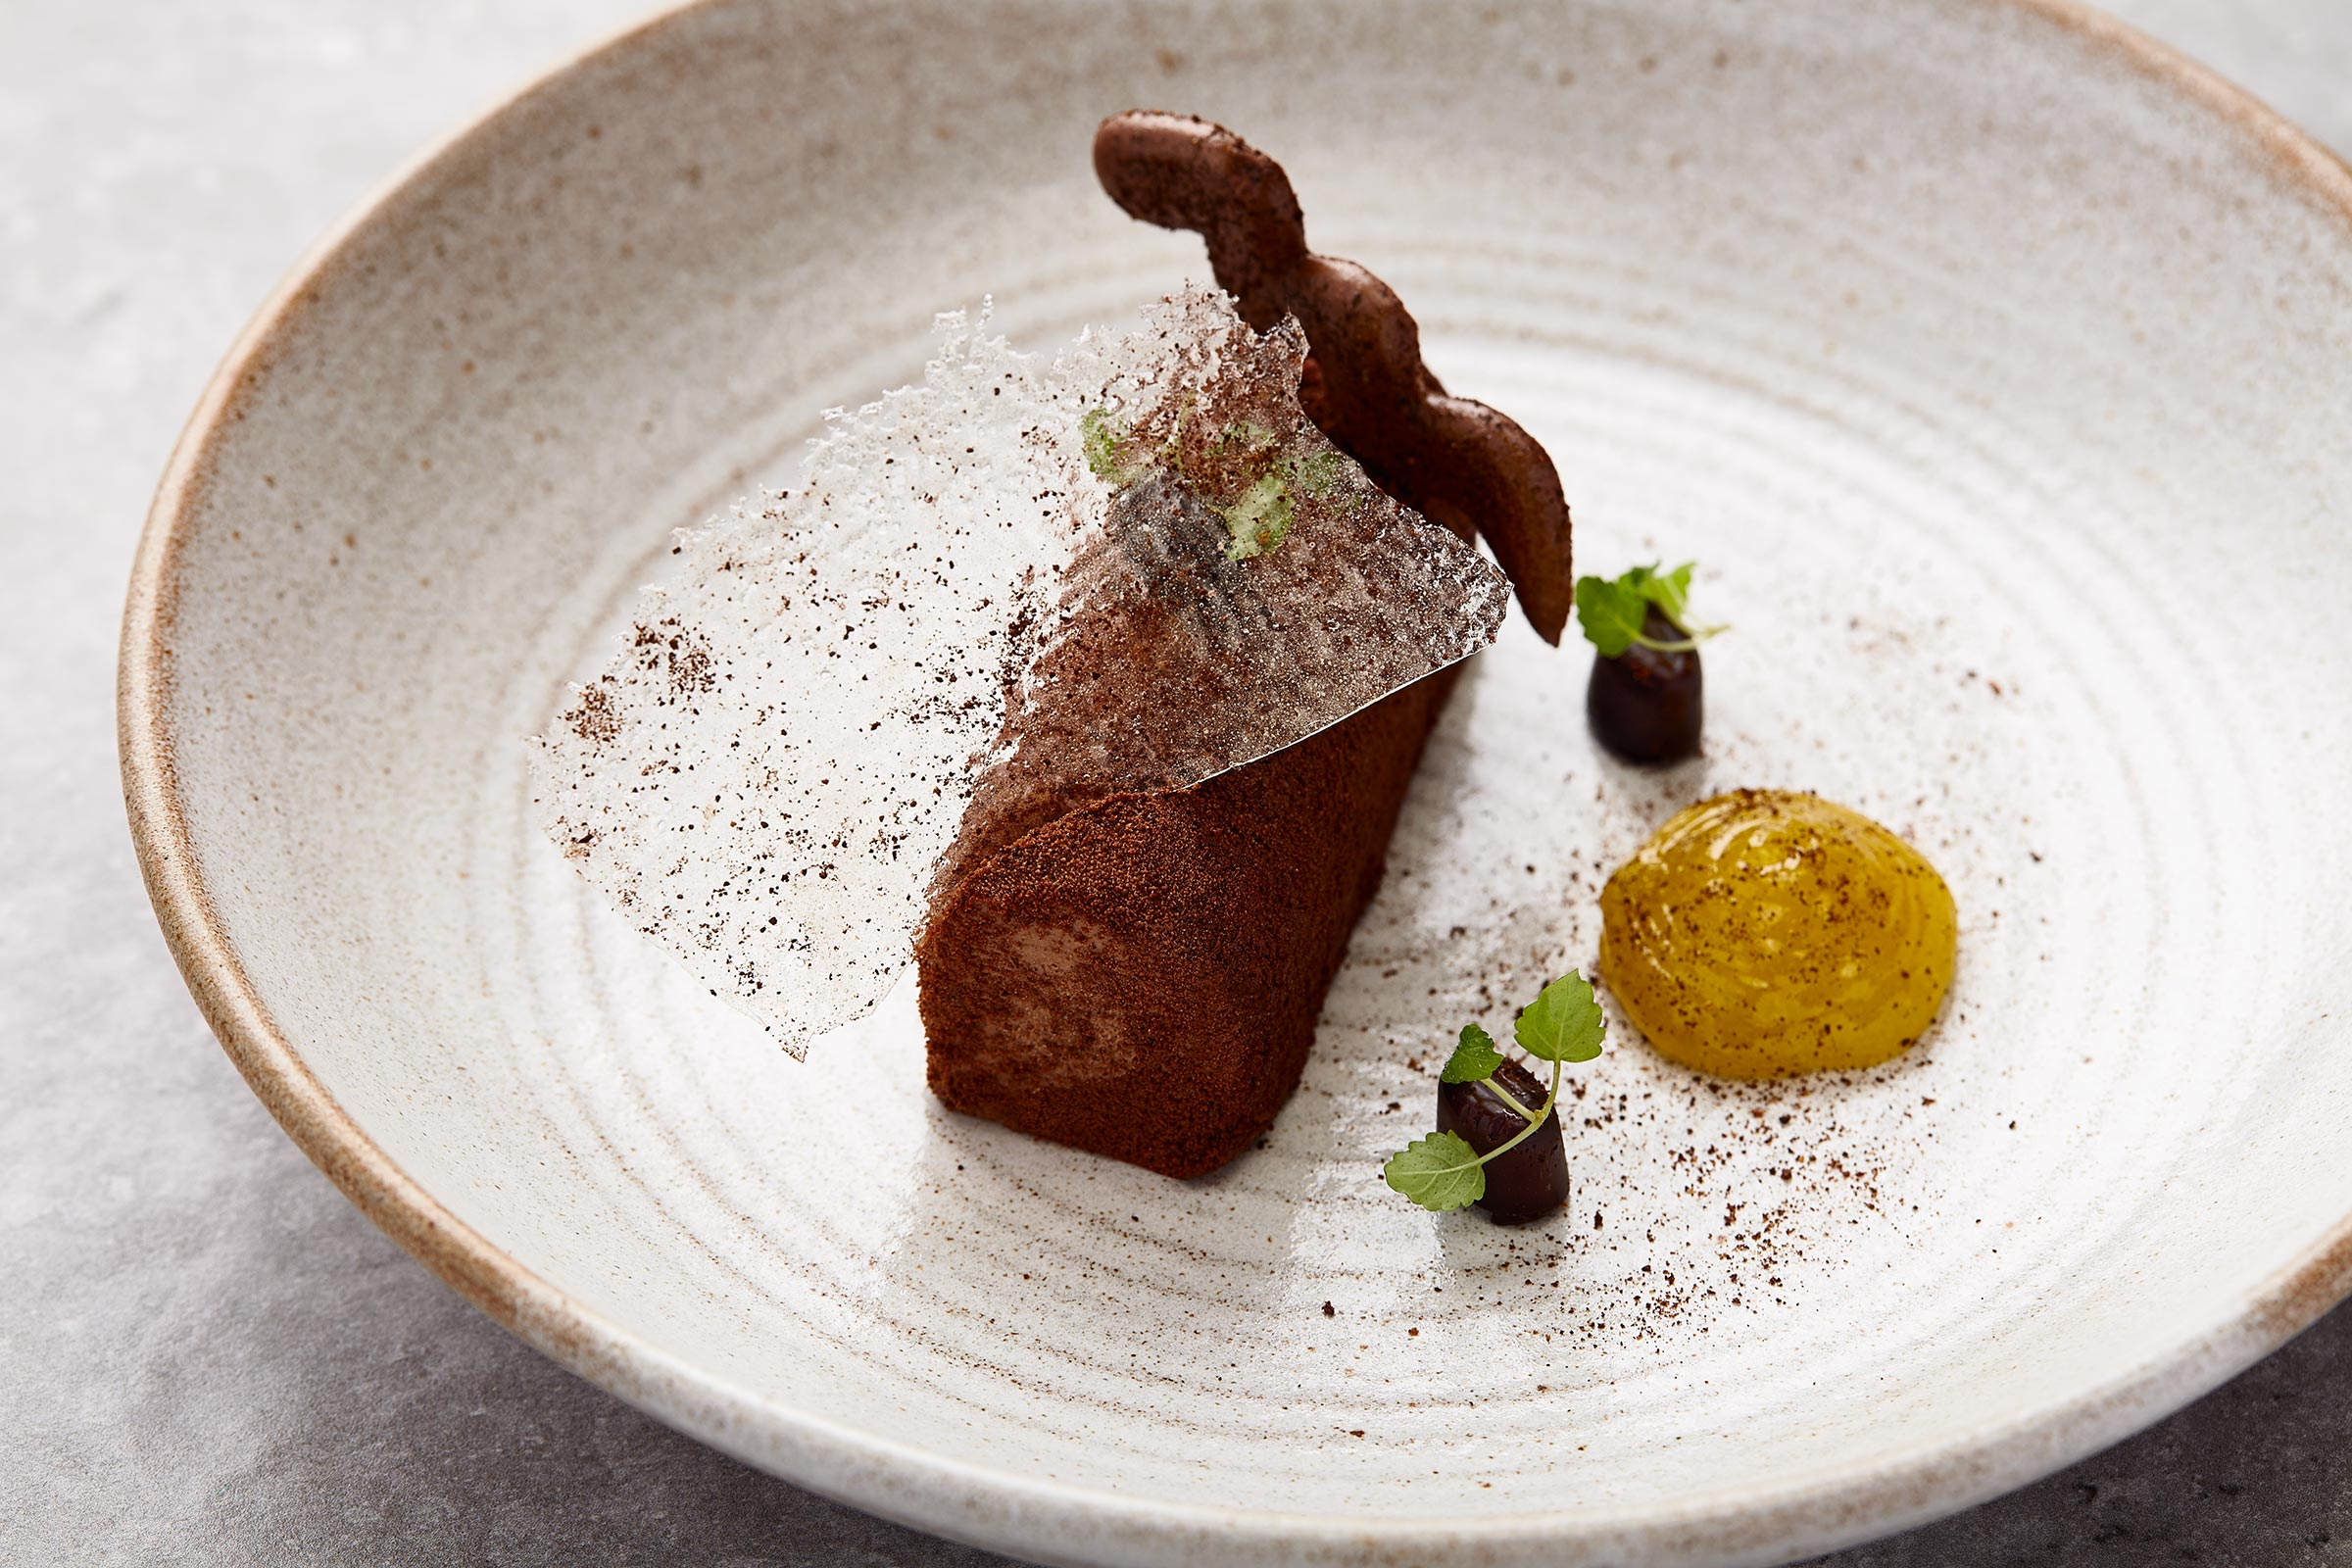 Chocolate and Sea Bucktorn, Castlehill Restaurant, Scottish food photographer